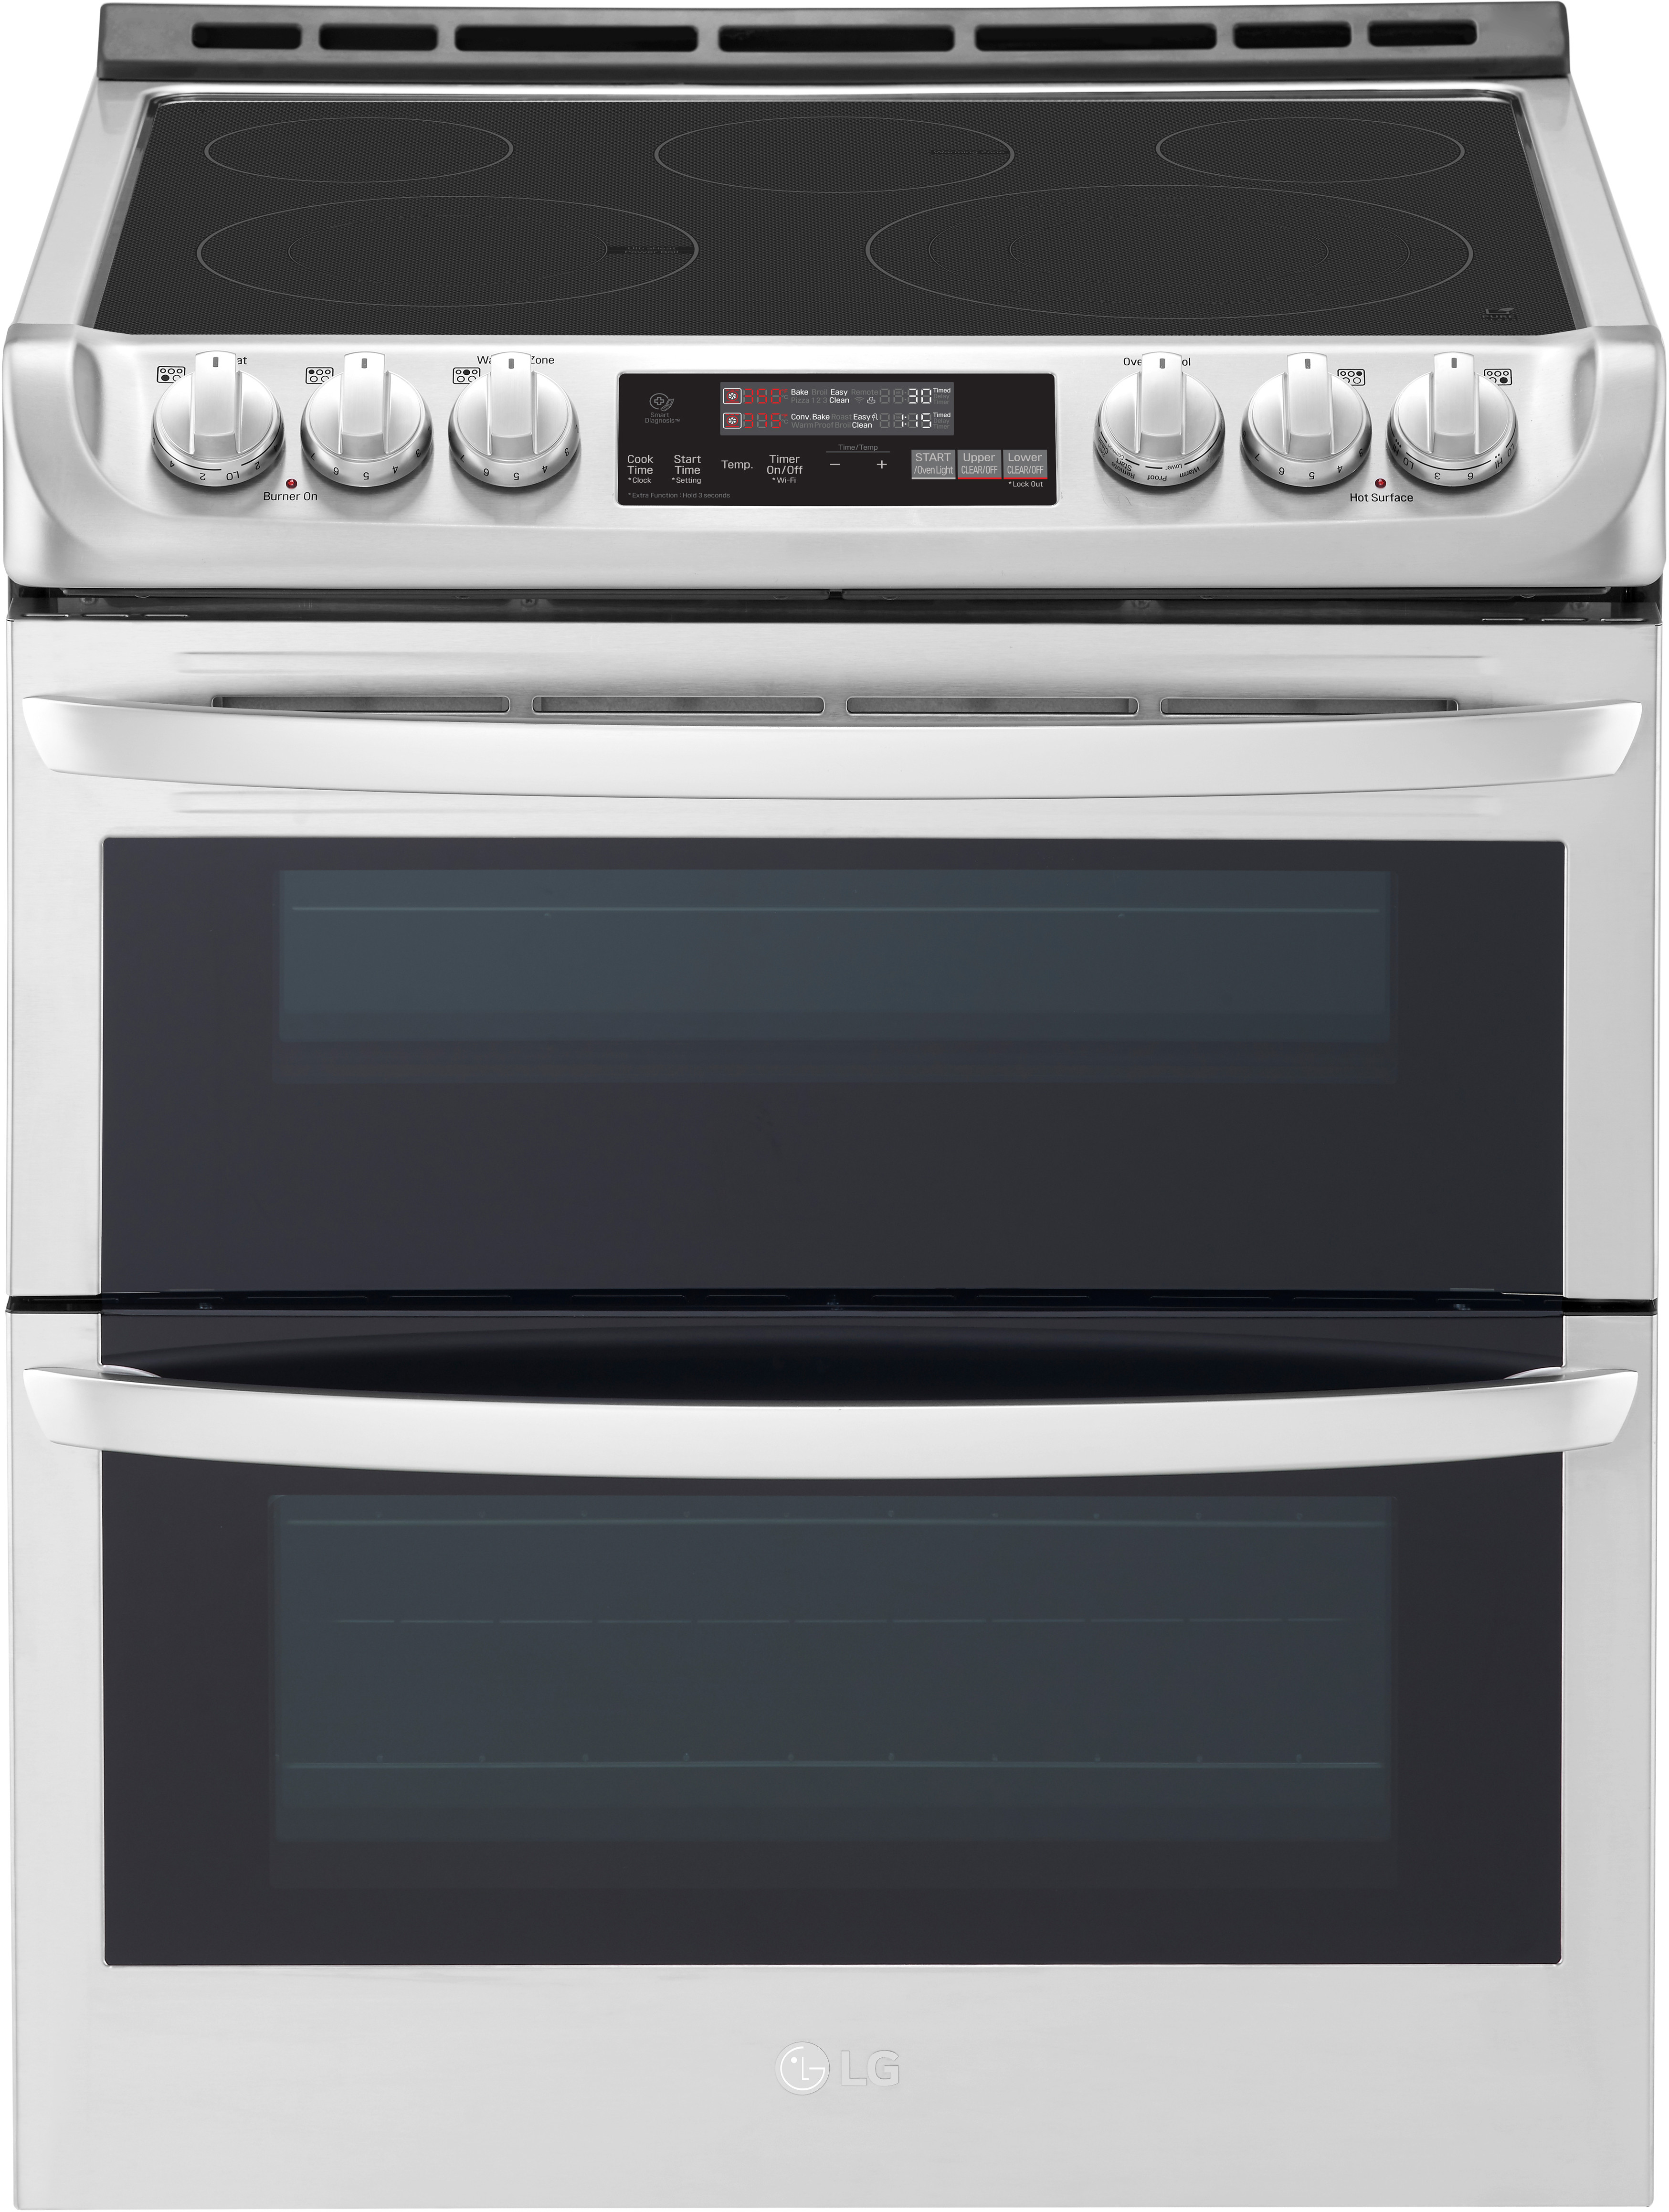 Lg Lte4815st 30 Inch Slide In Double Oven Electric Range With